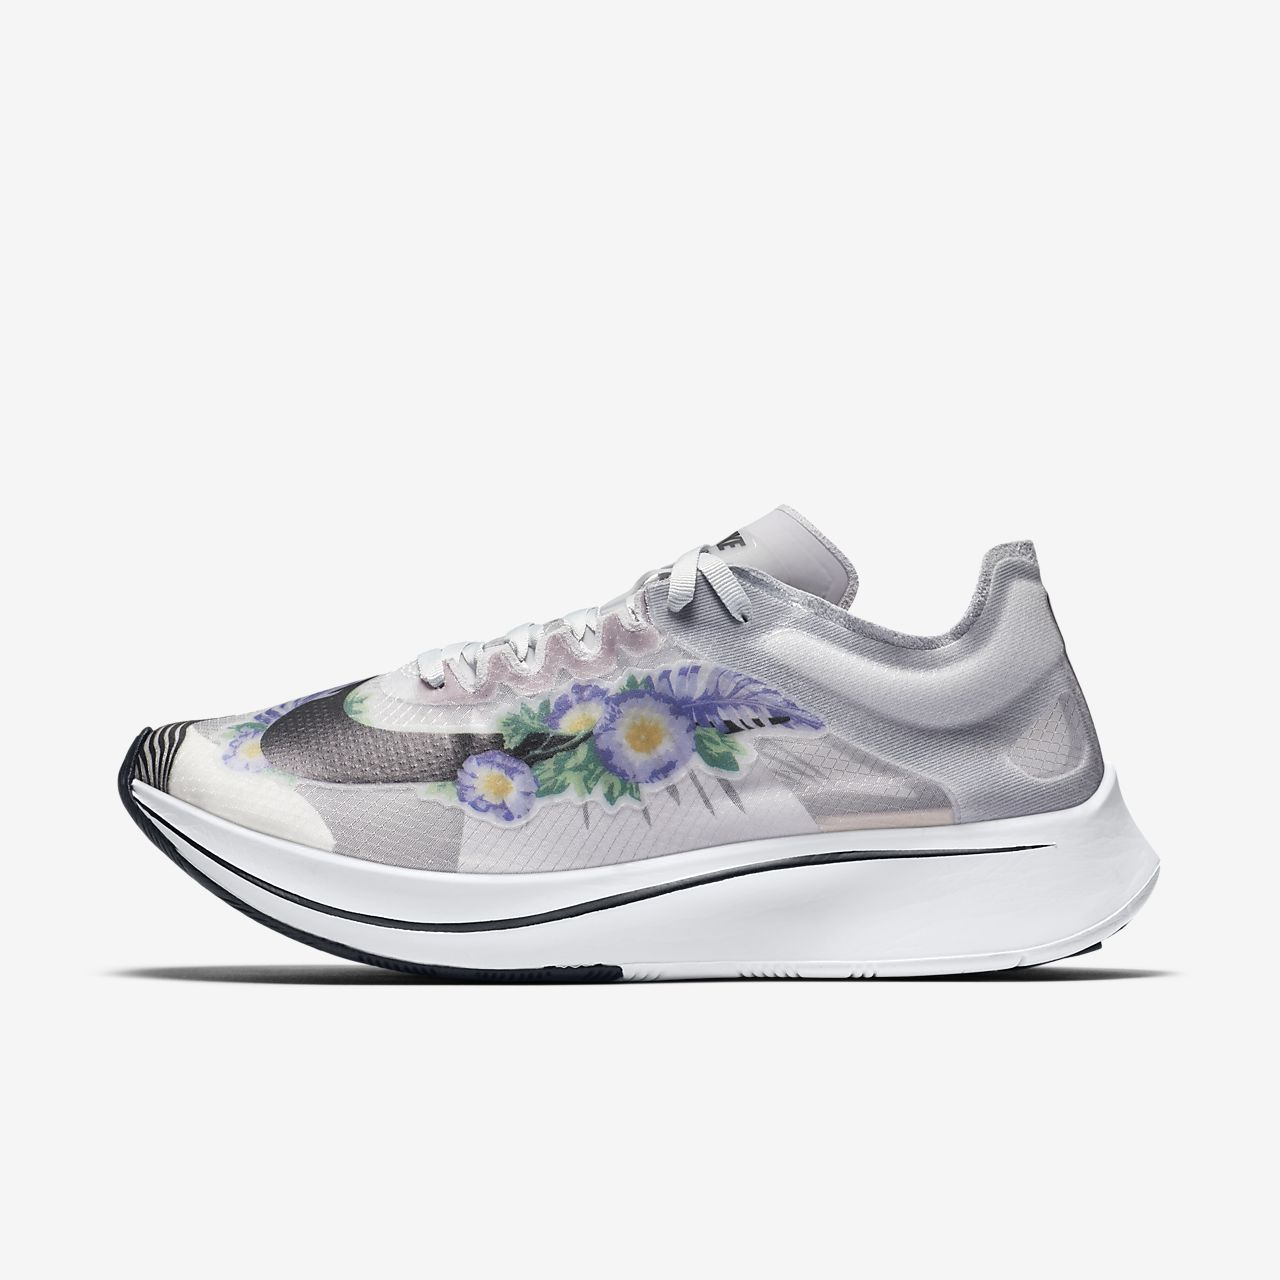 Nike Zoom Fly SP Floral Women s Running Shoe. Nike.com SG 0d9b6e446